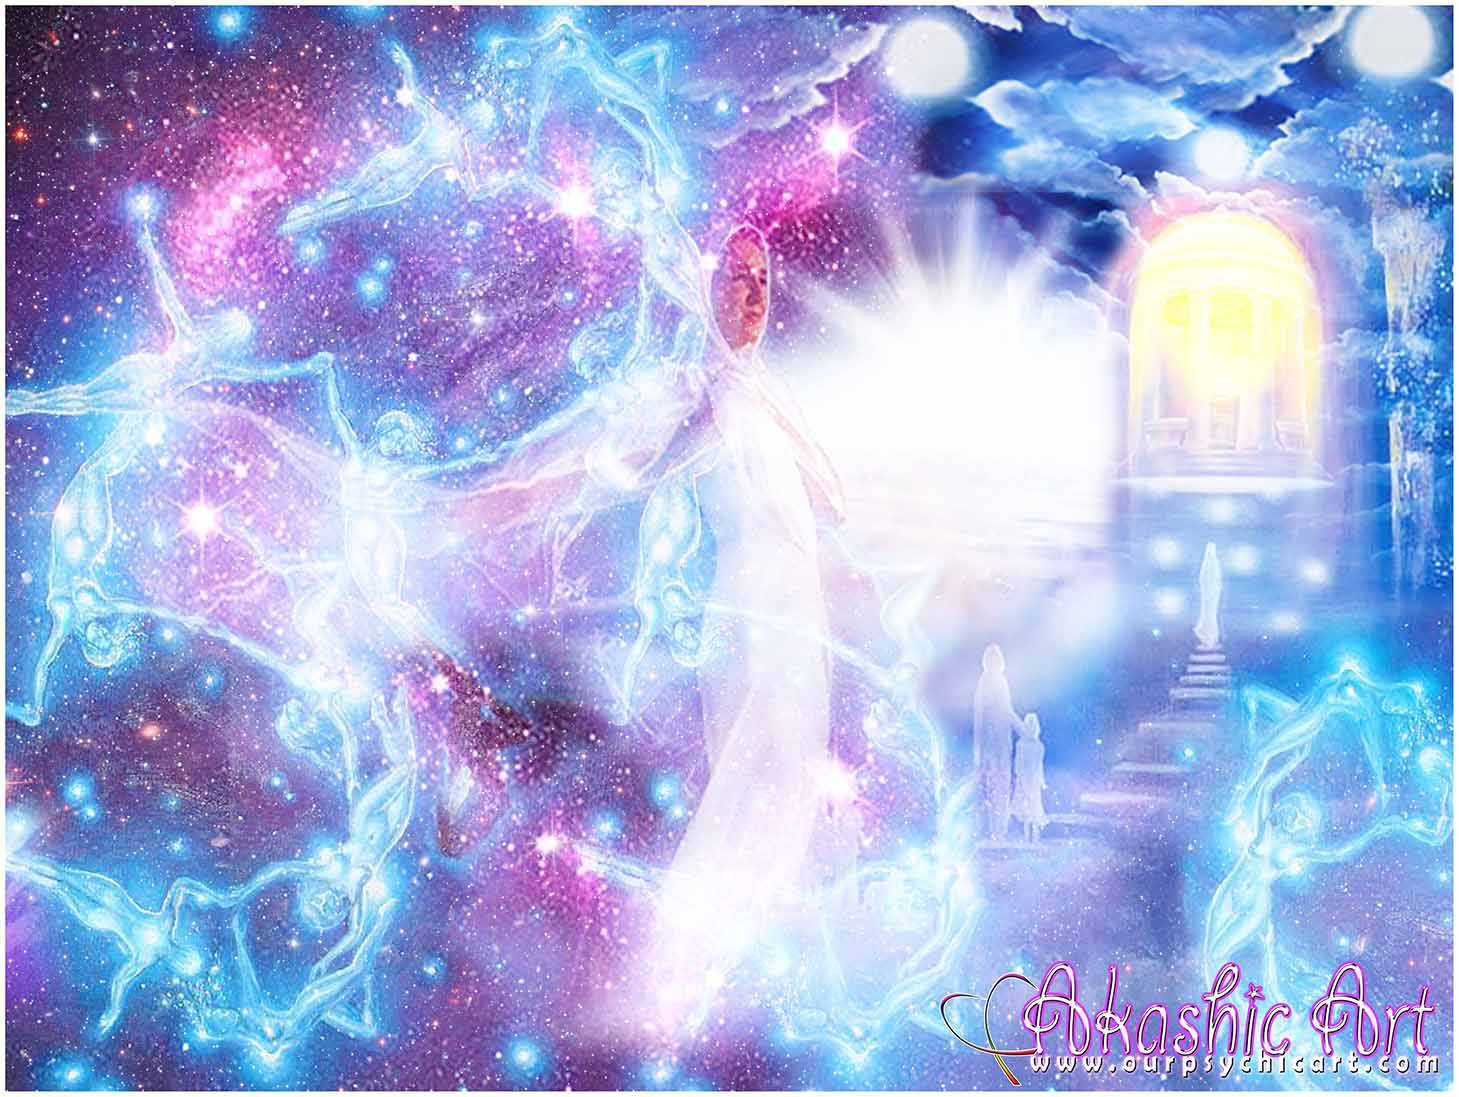 Astral Angel